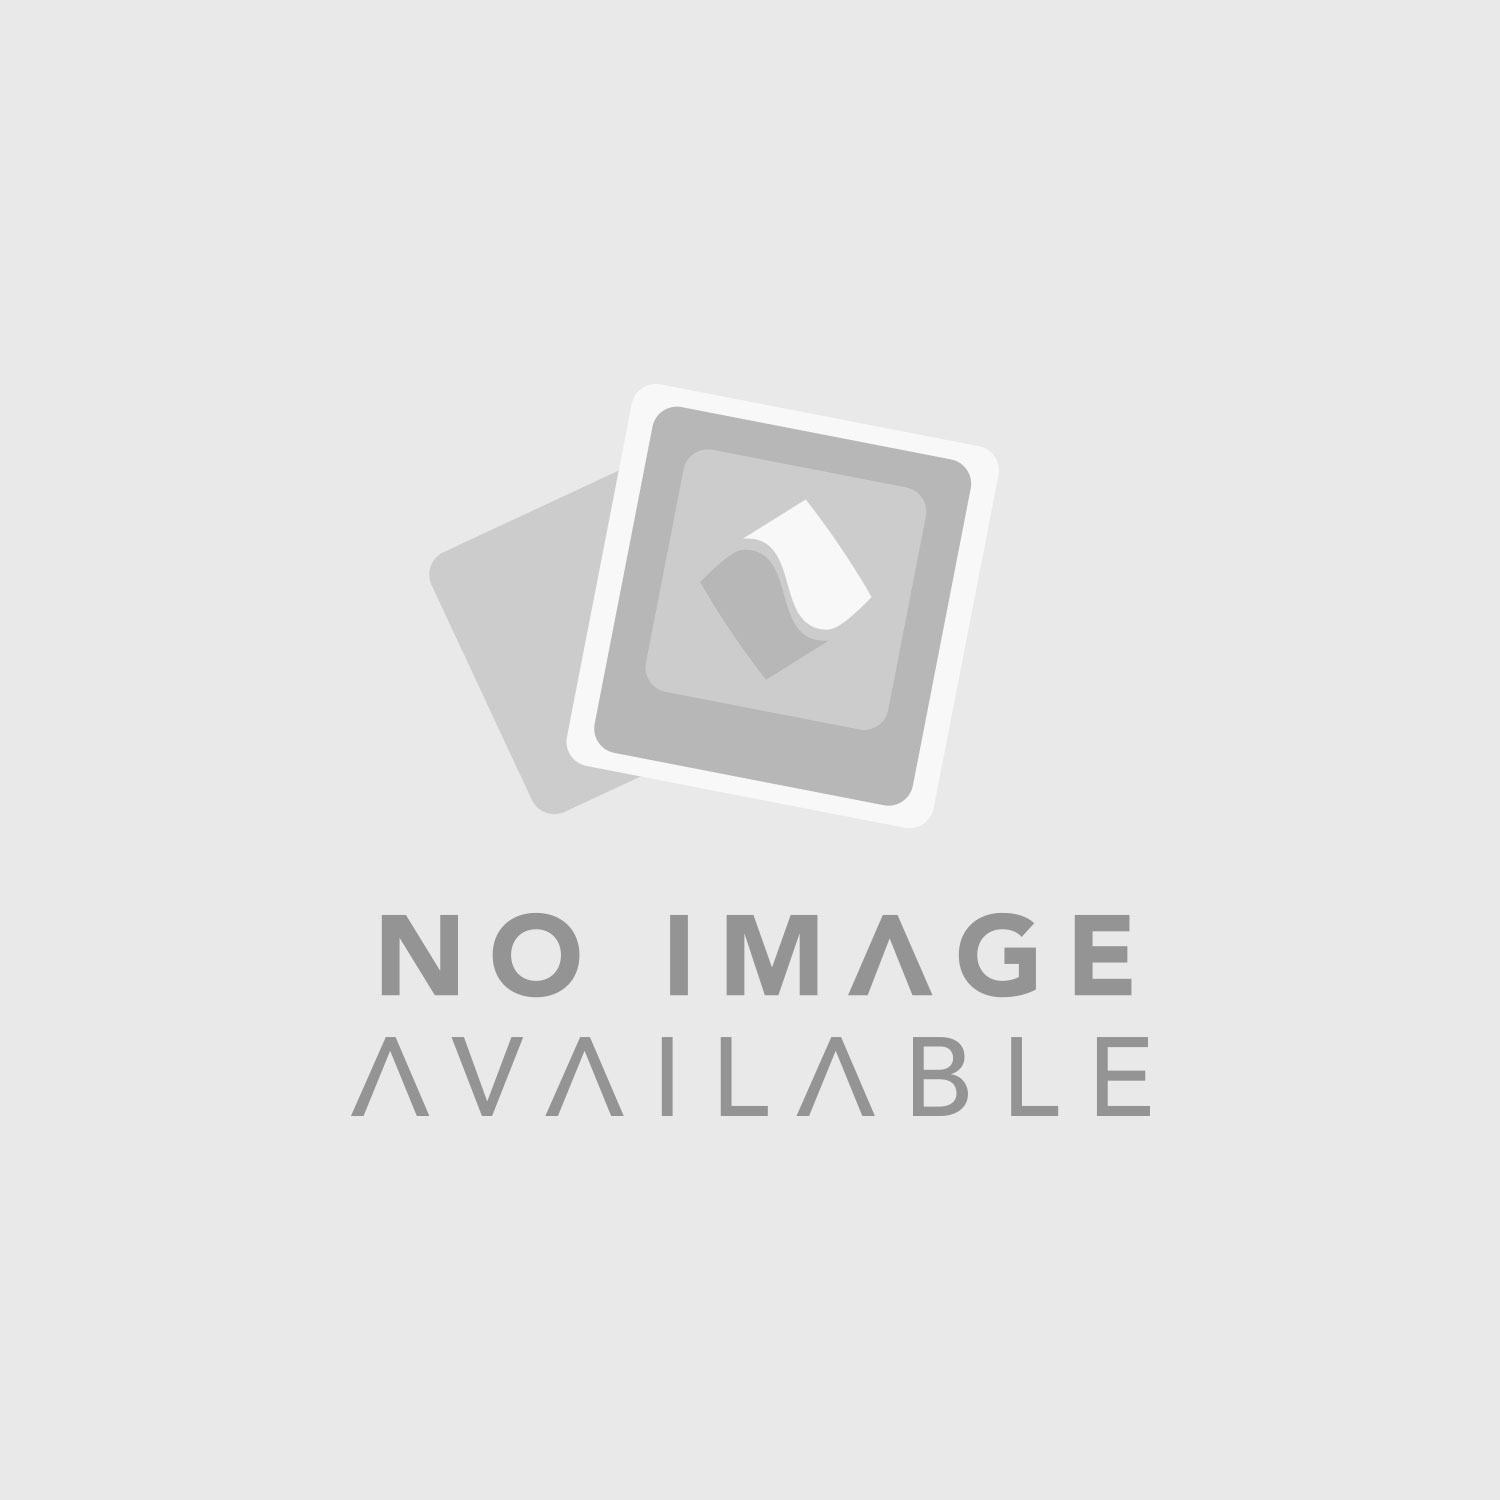 D'Addario EJ16 Acoustic Guitar Strings (.012-.053)